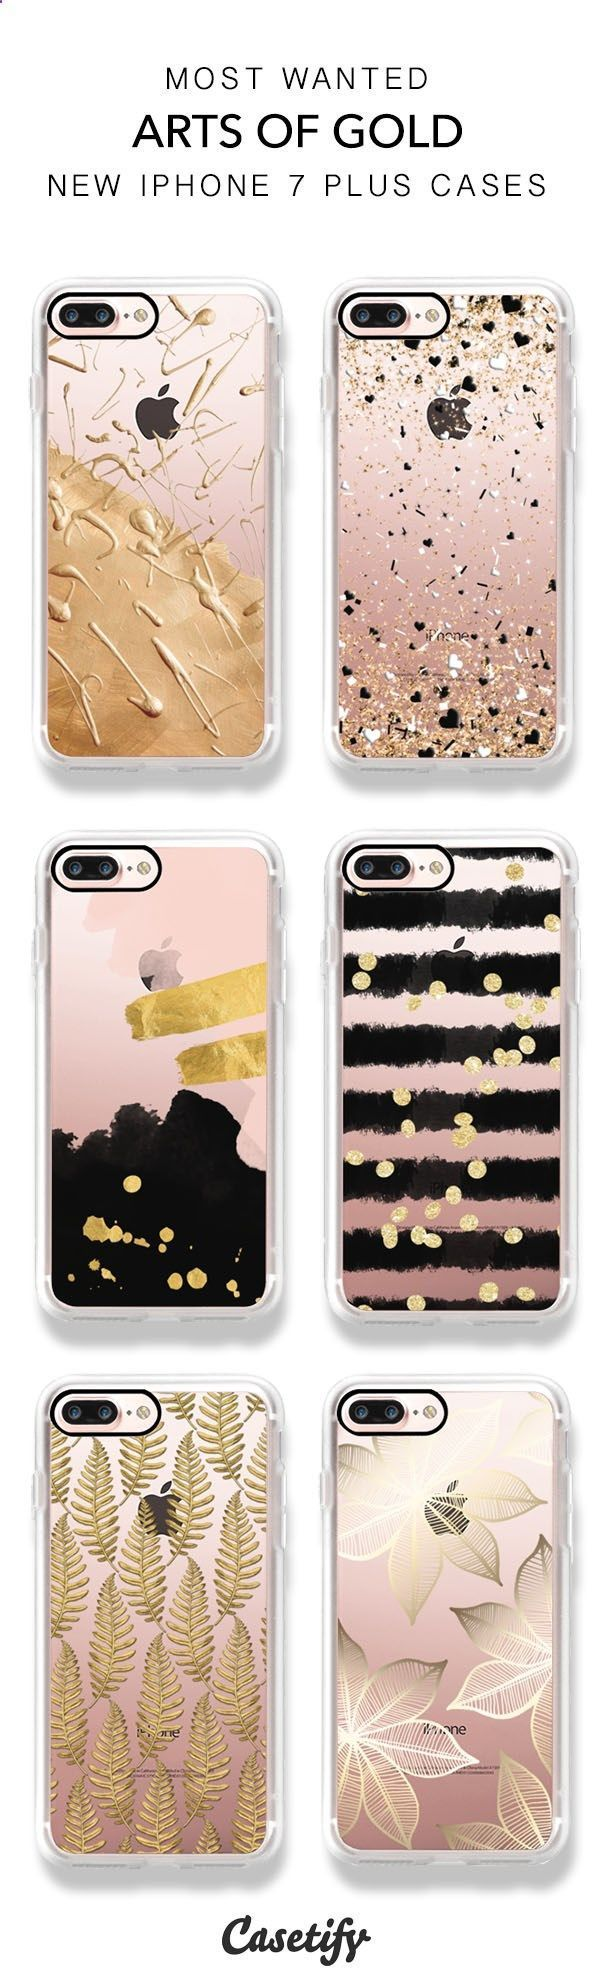 Phone Cases - Best selling Gold and Bold iPhone 7 and iPhone 7 Plus cases. Shop the Art of Gold Collection here > www.casetify.com/... #iphoneaccessories,